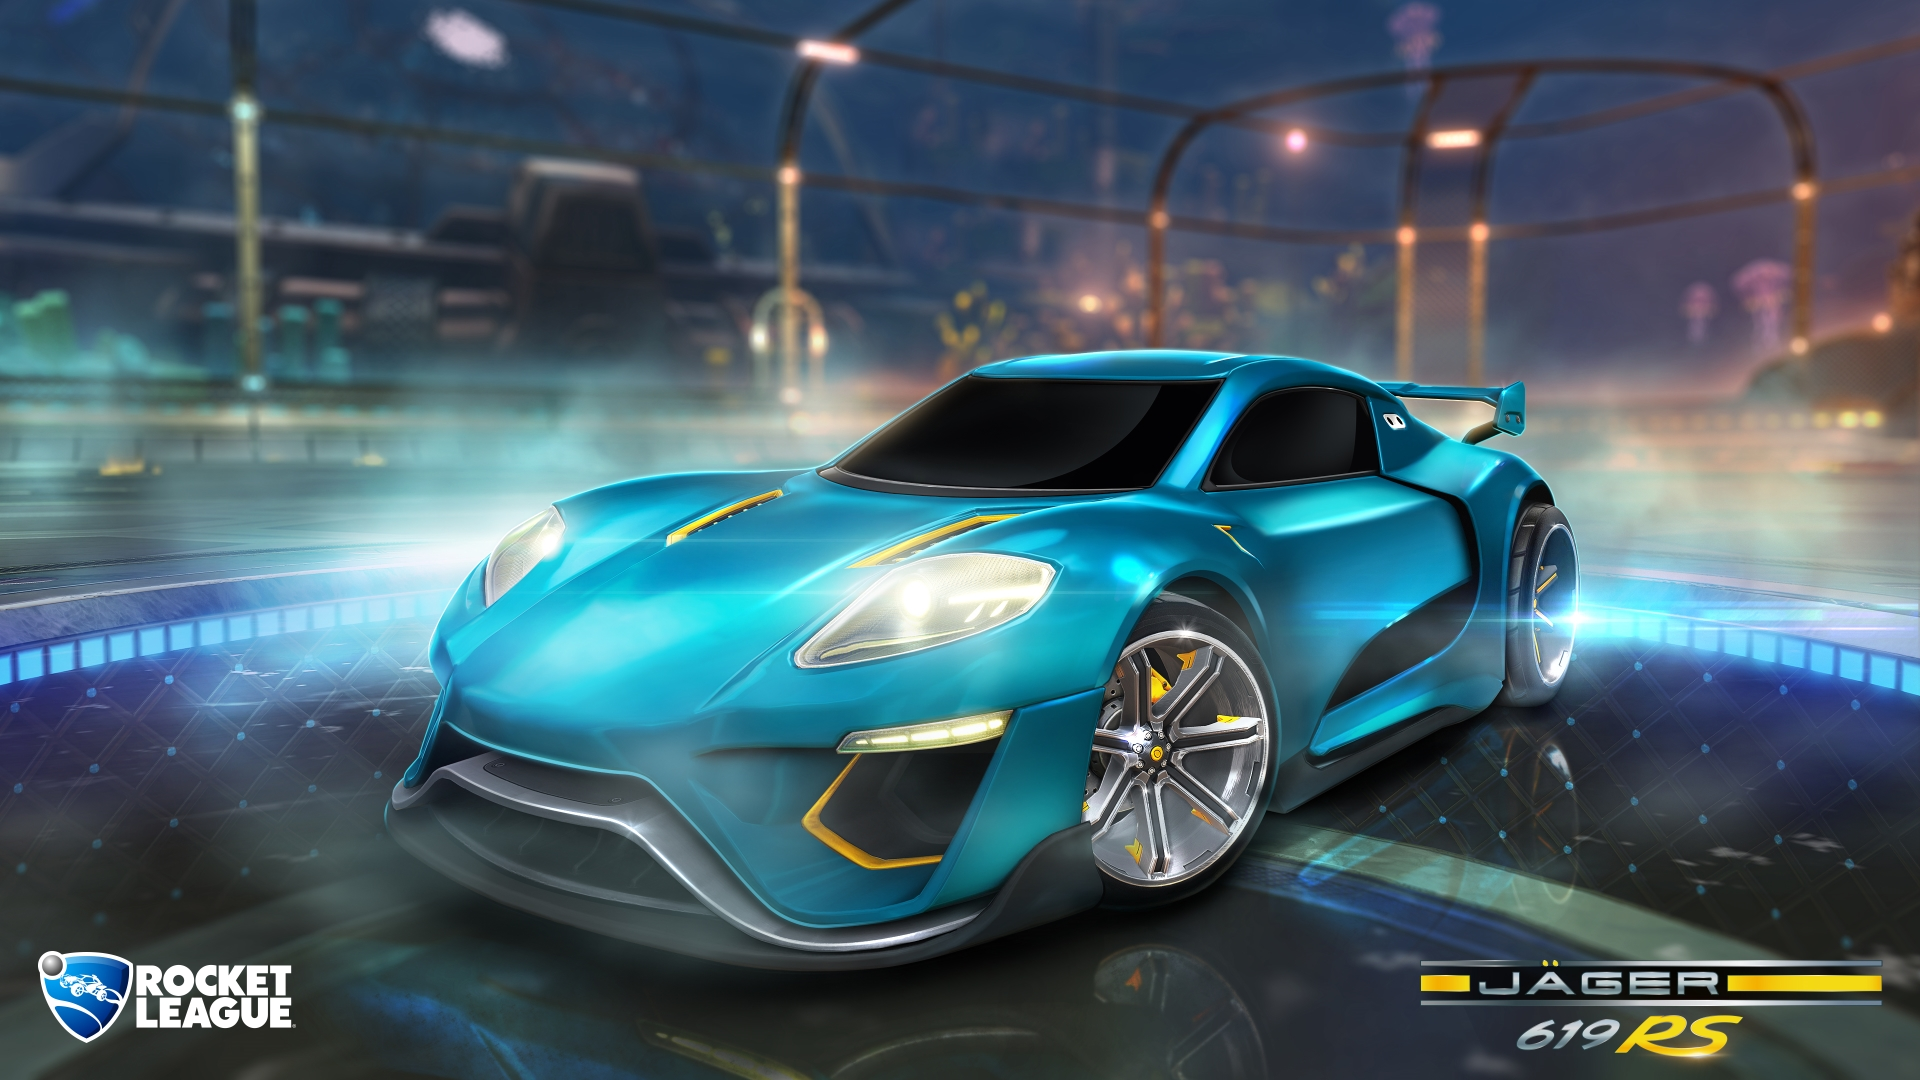 Jäger 619 RS | Rocket League Wiki | FANDOM powered by Wikia